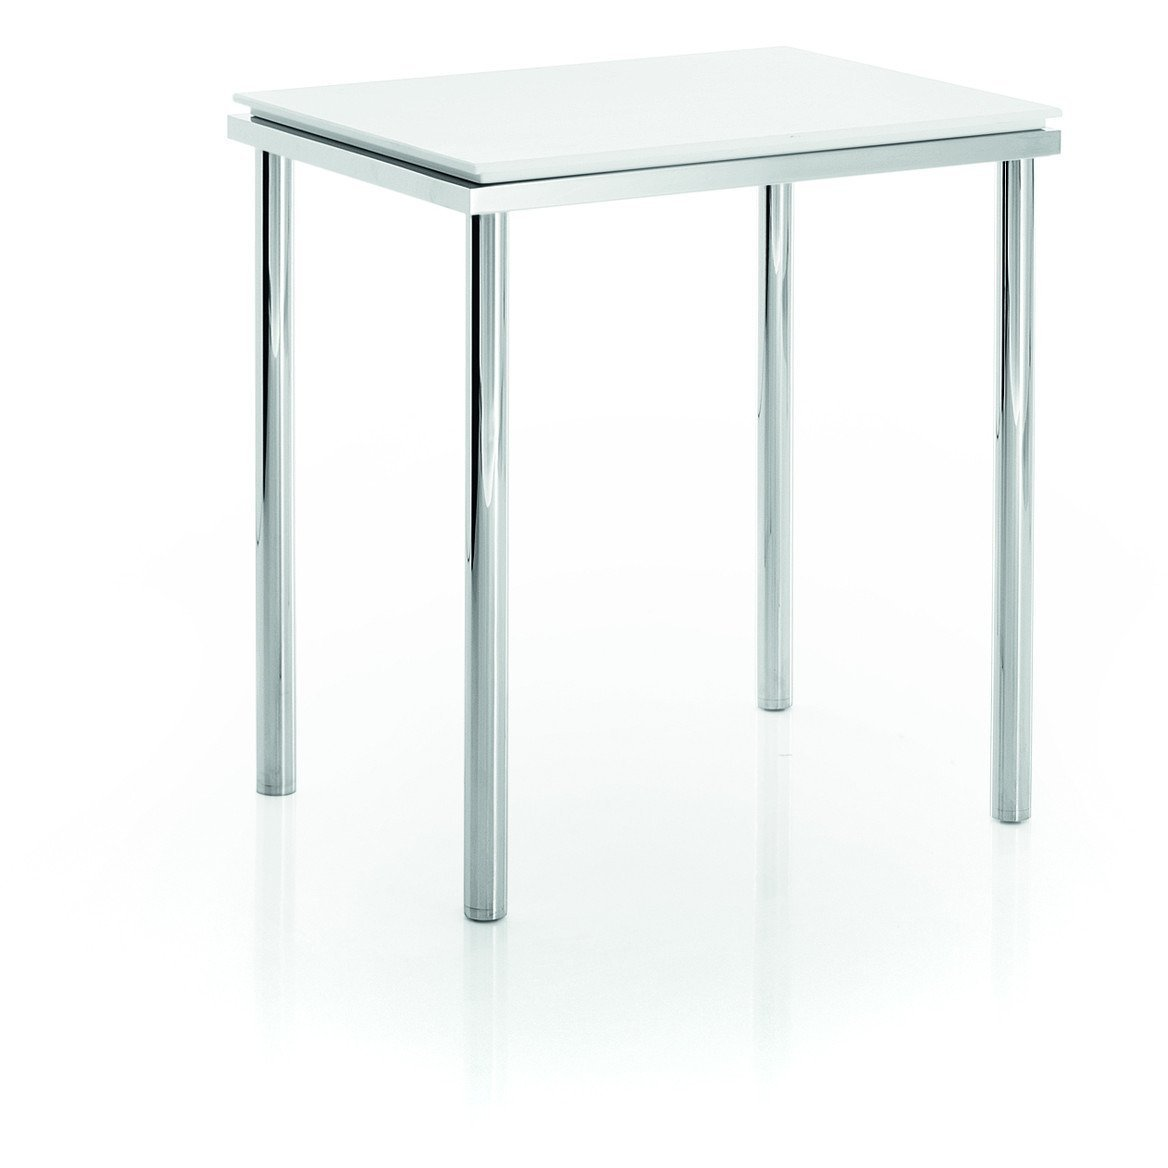 Vanity Stool Chrome Lb Backless Vanity Stool Bench Bedroom With Chrome Legs Mattstone Seat